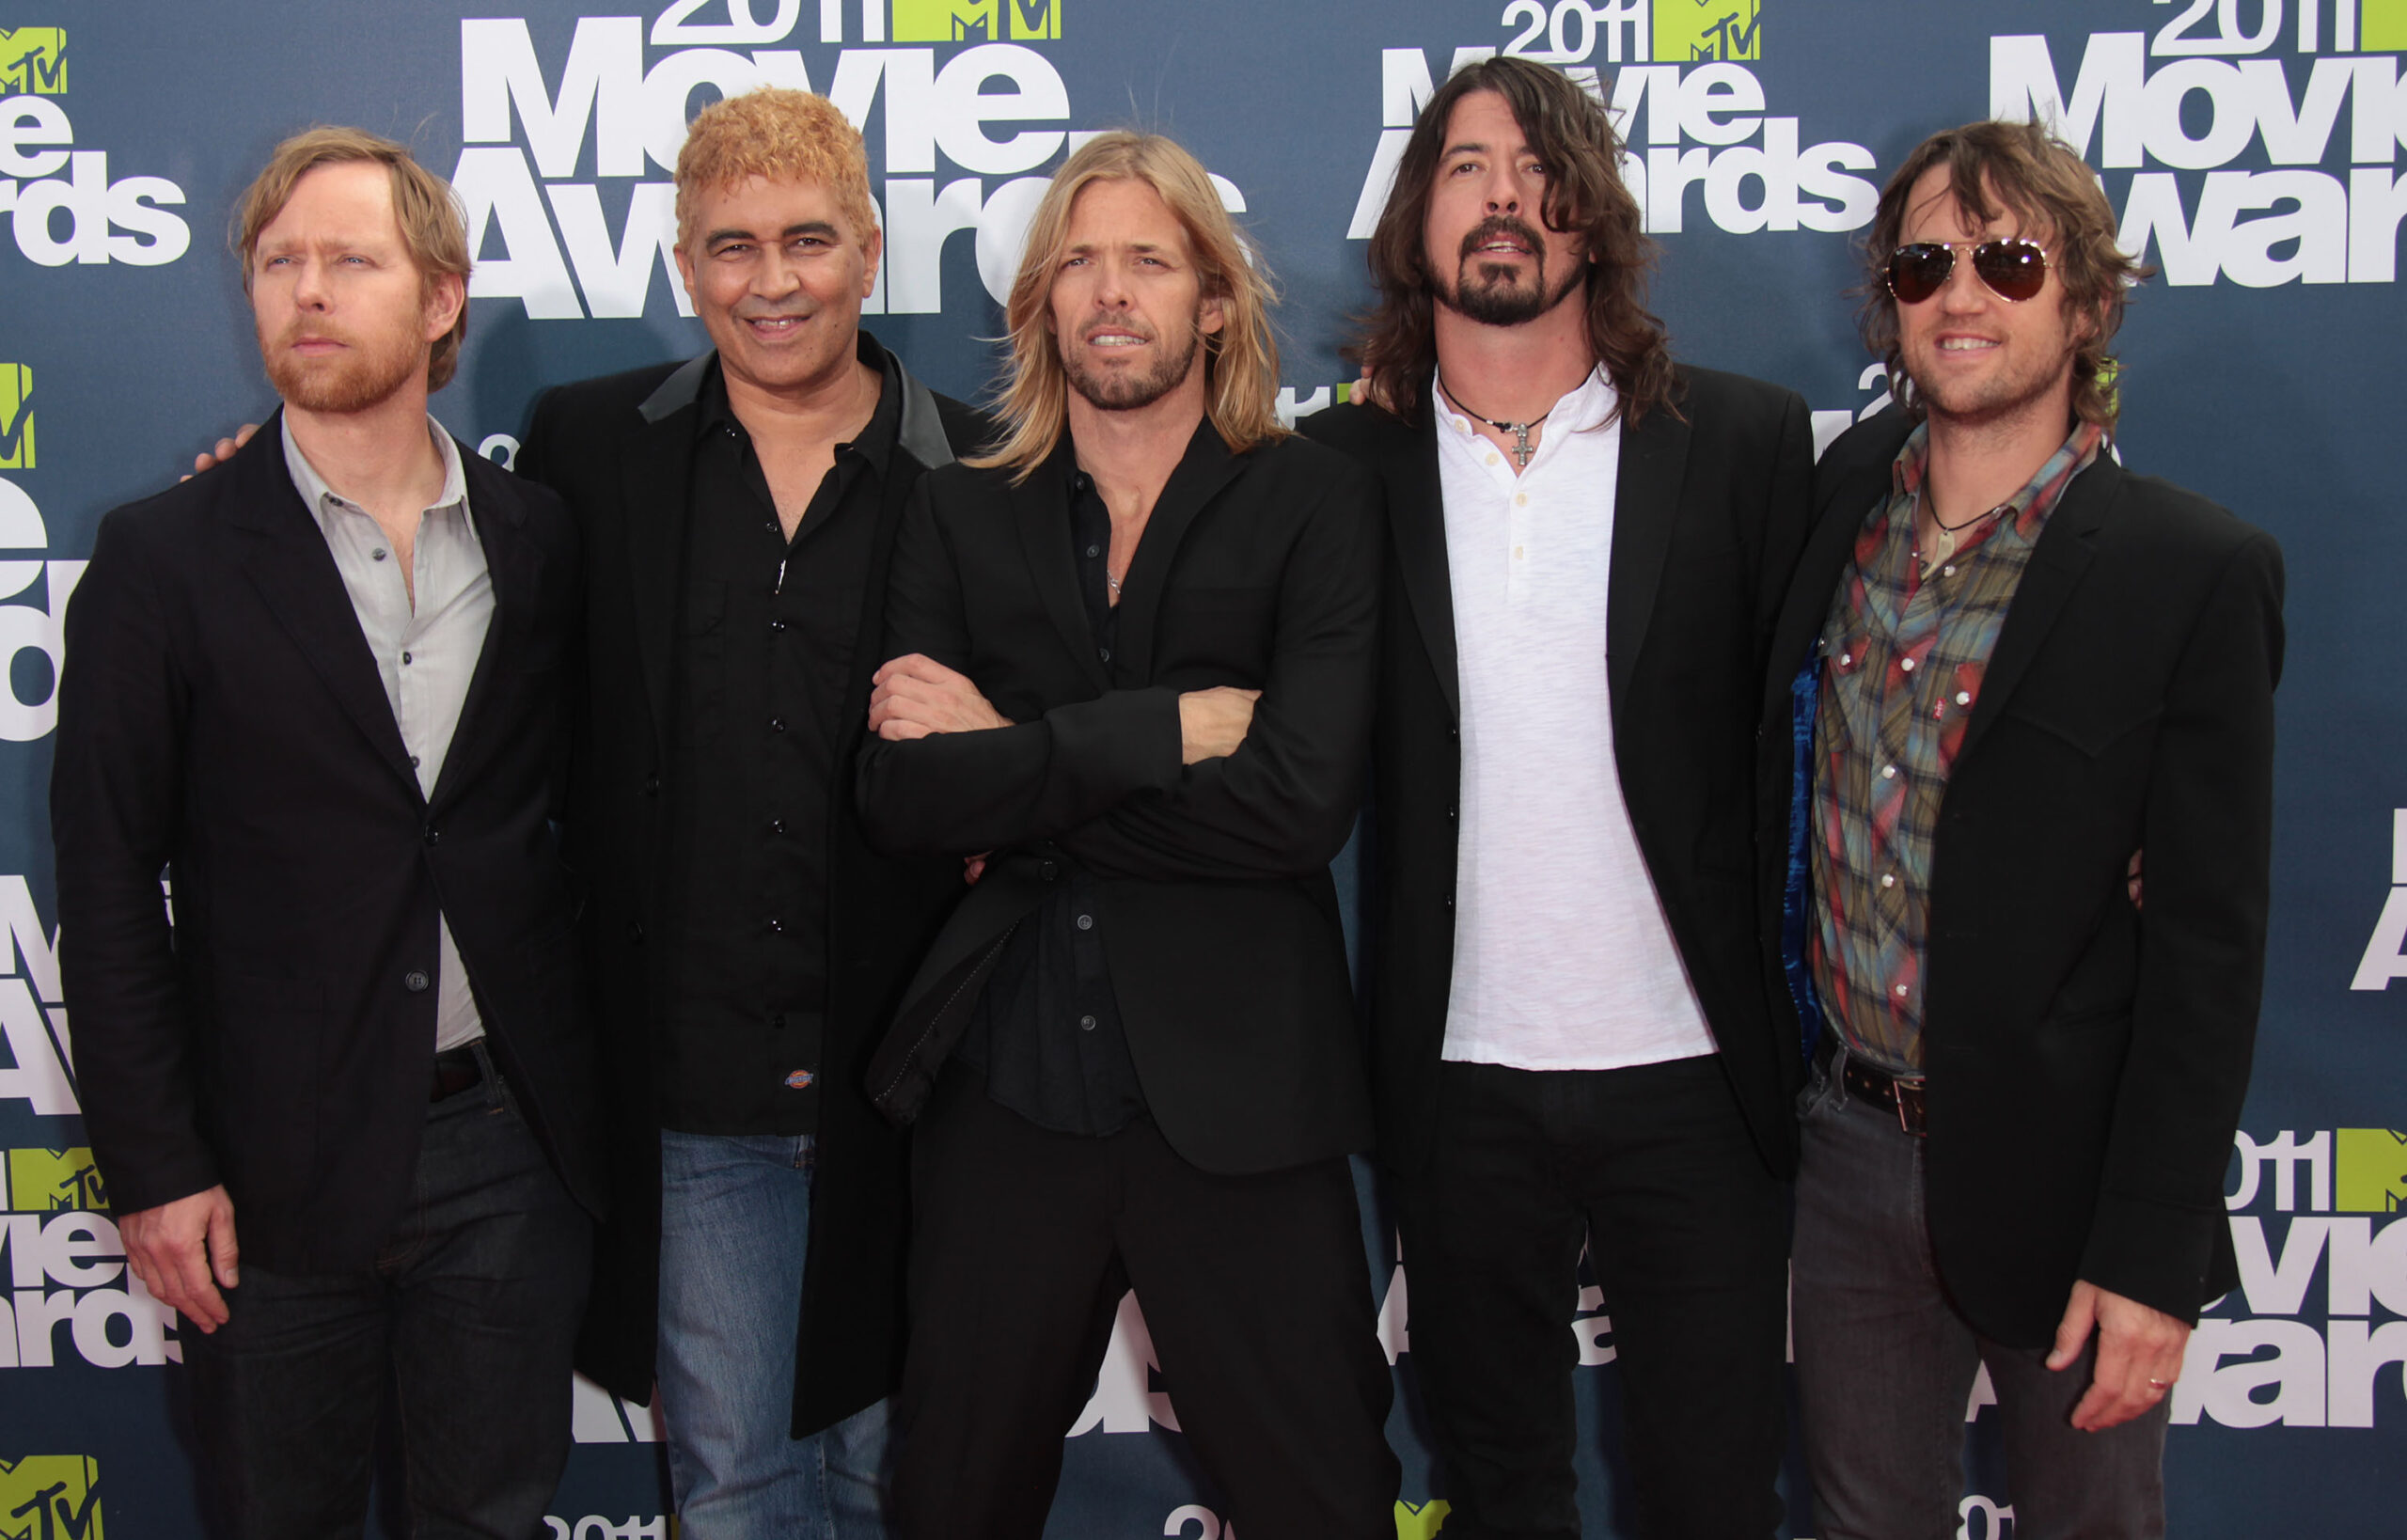 Anti-gay hate group trying to boycott the Foo Fighters gets drive-by disco in response